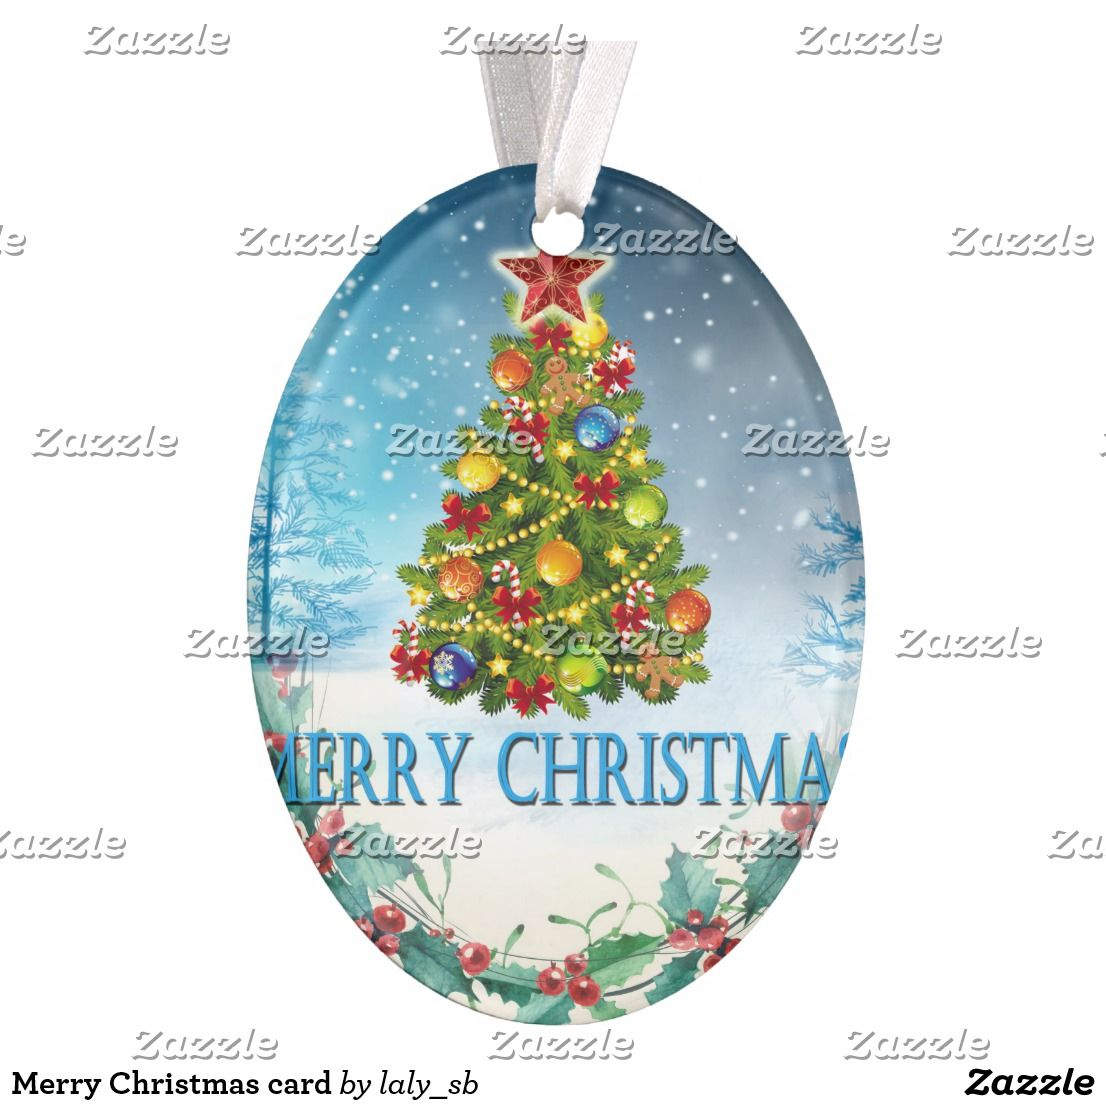 Merry Christmas Card Ornament With Images Christmas Card Ornaments